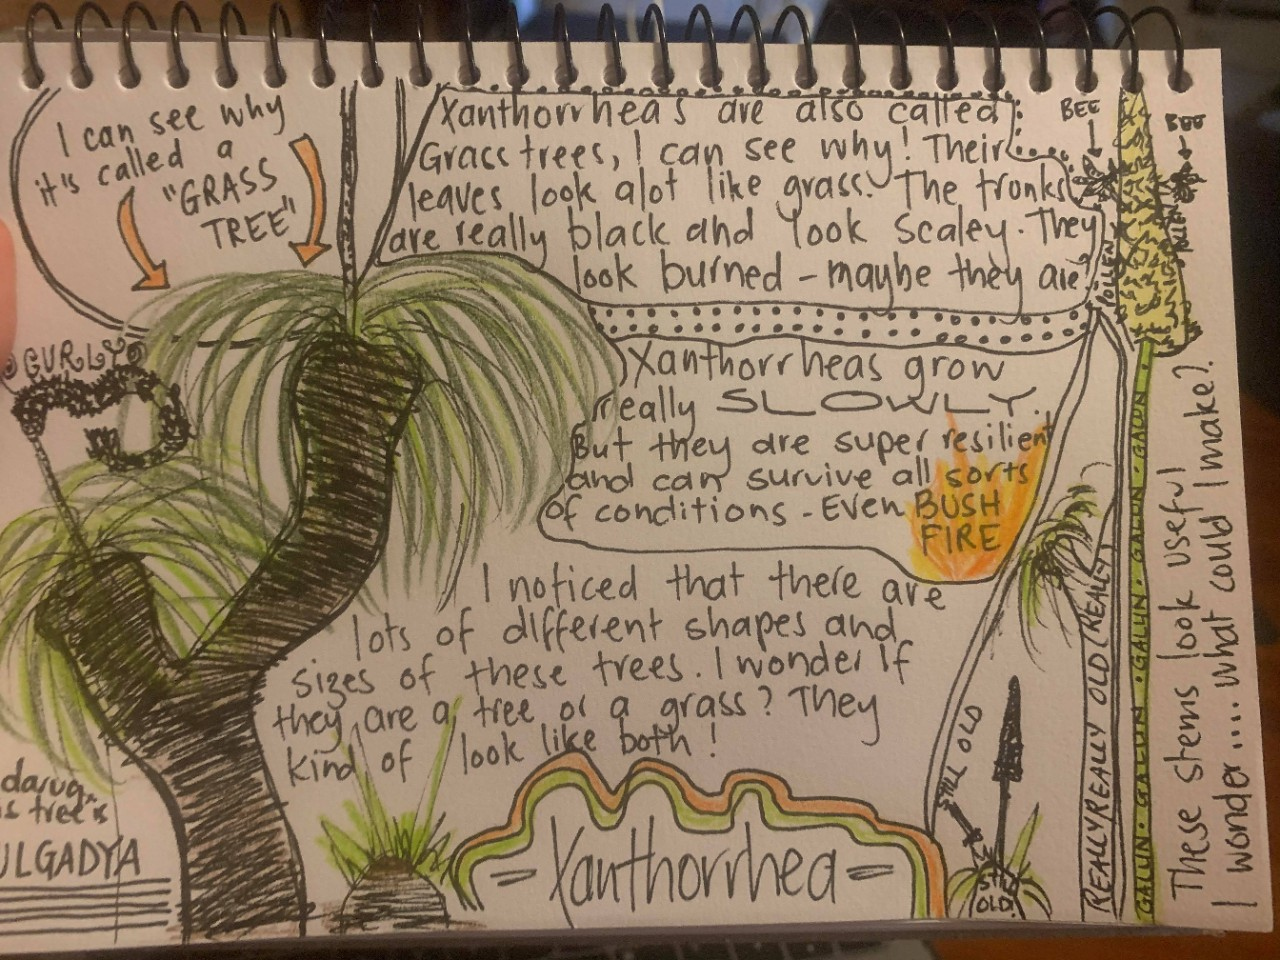 Nature journal page of xanthorrhea (grass tree) with sketches and text